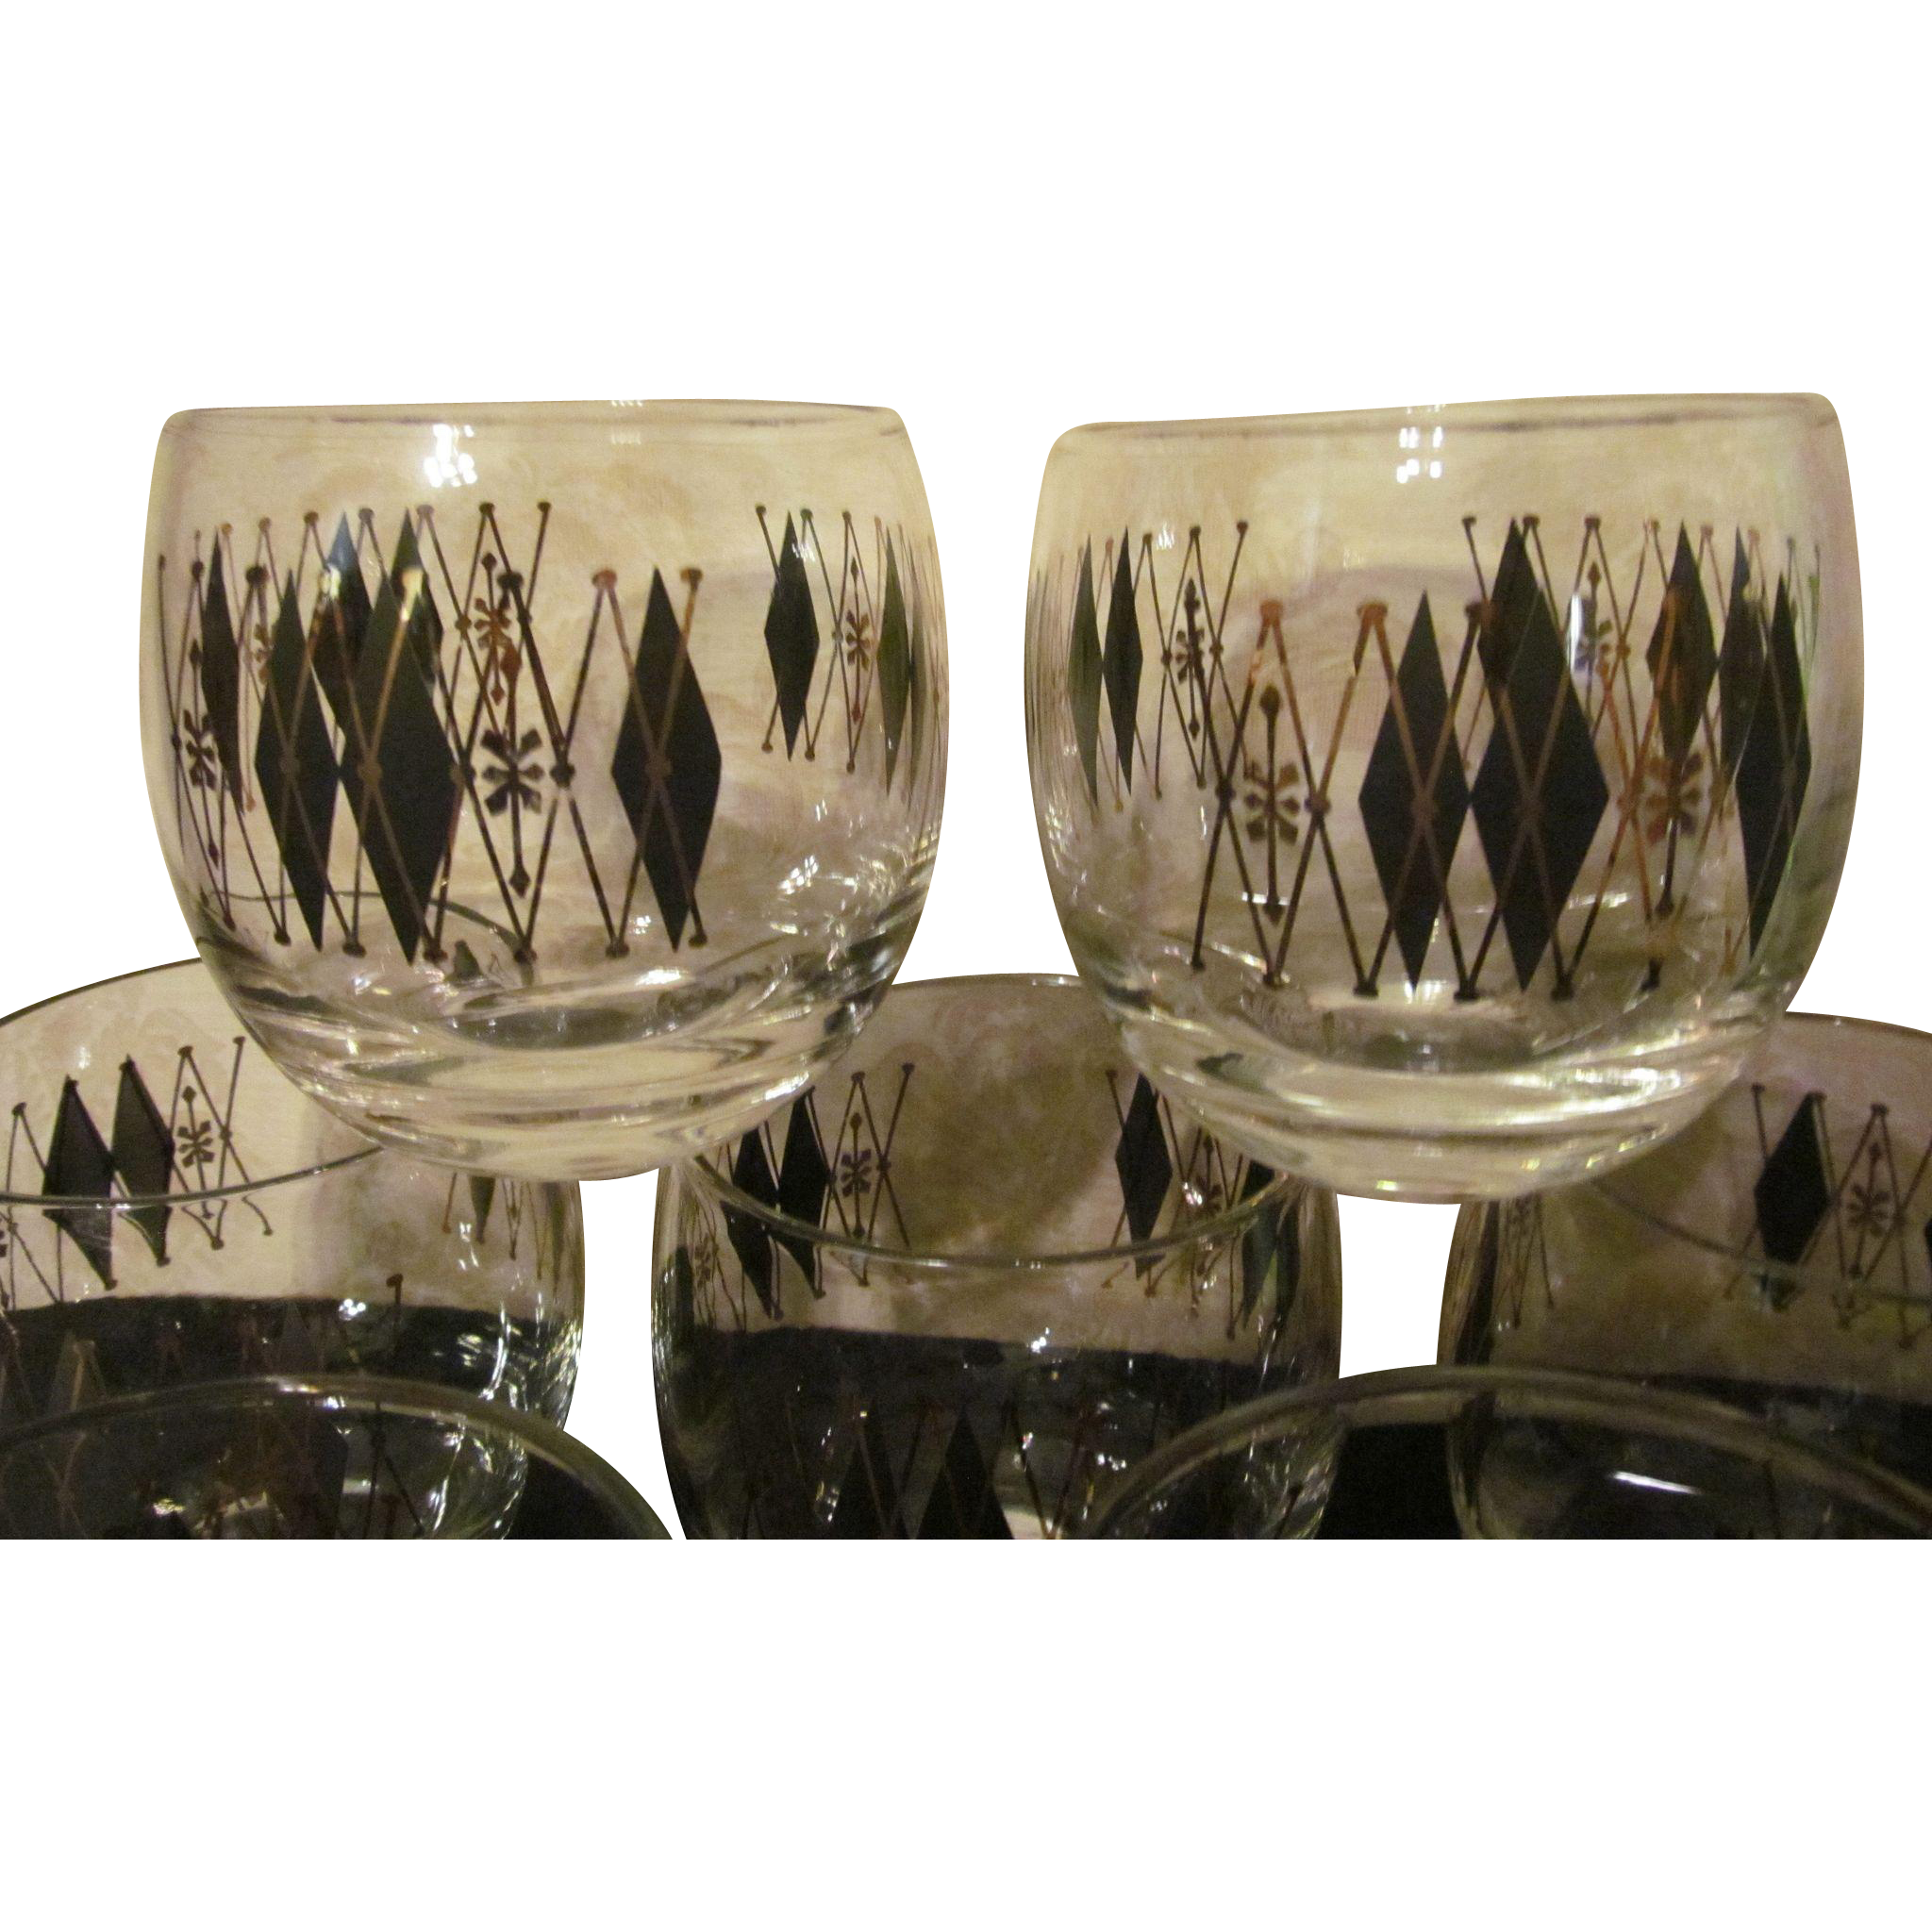 8 roly poly mid century barware glasses sold on ruby lane